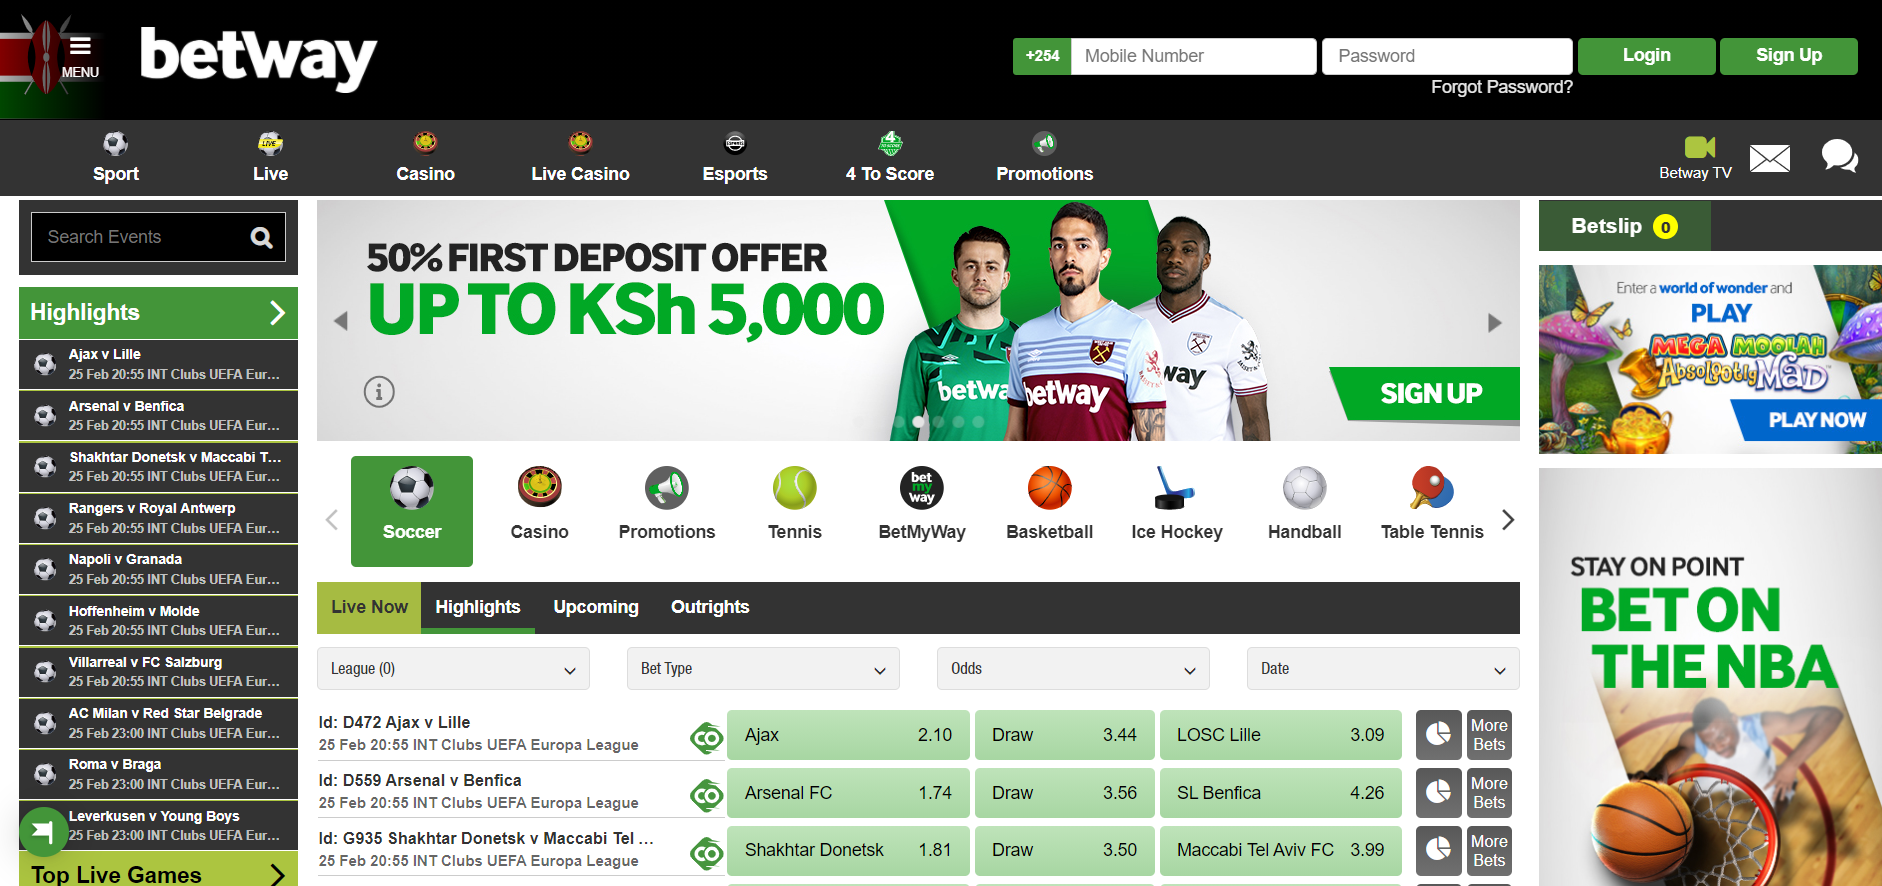 Betway login in Kenya